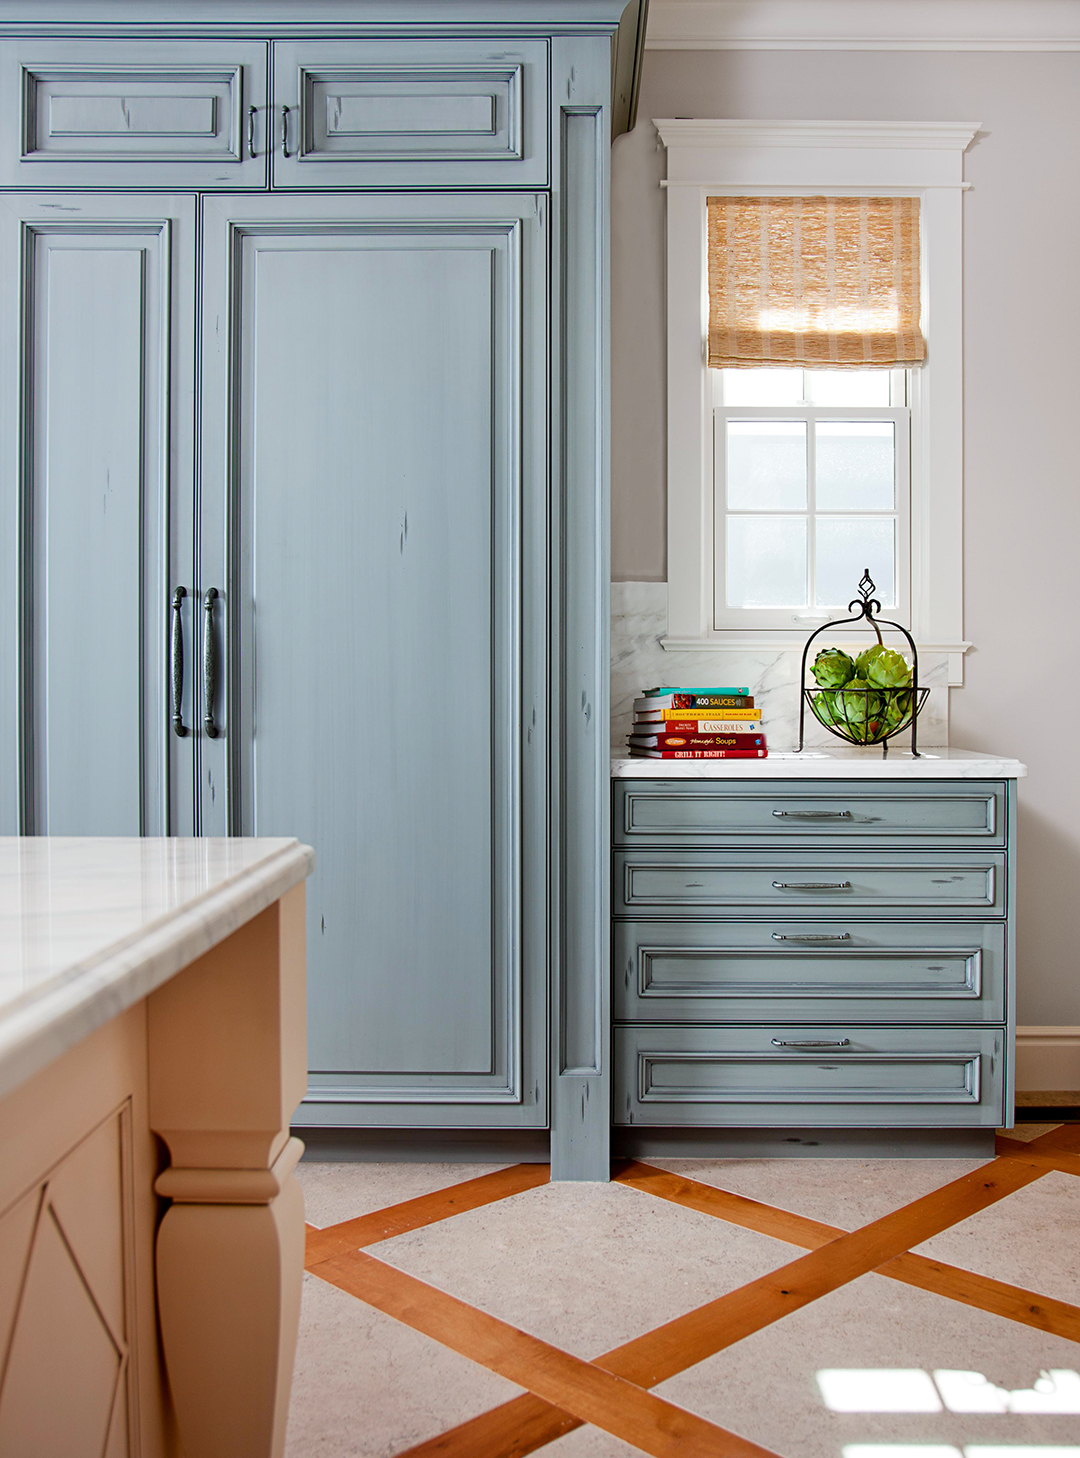 kitchen with blue accent cabinet and drawers by window